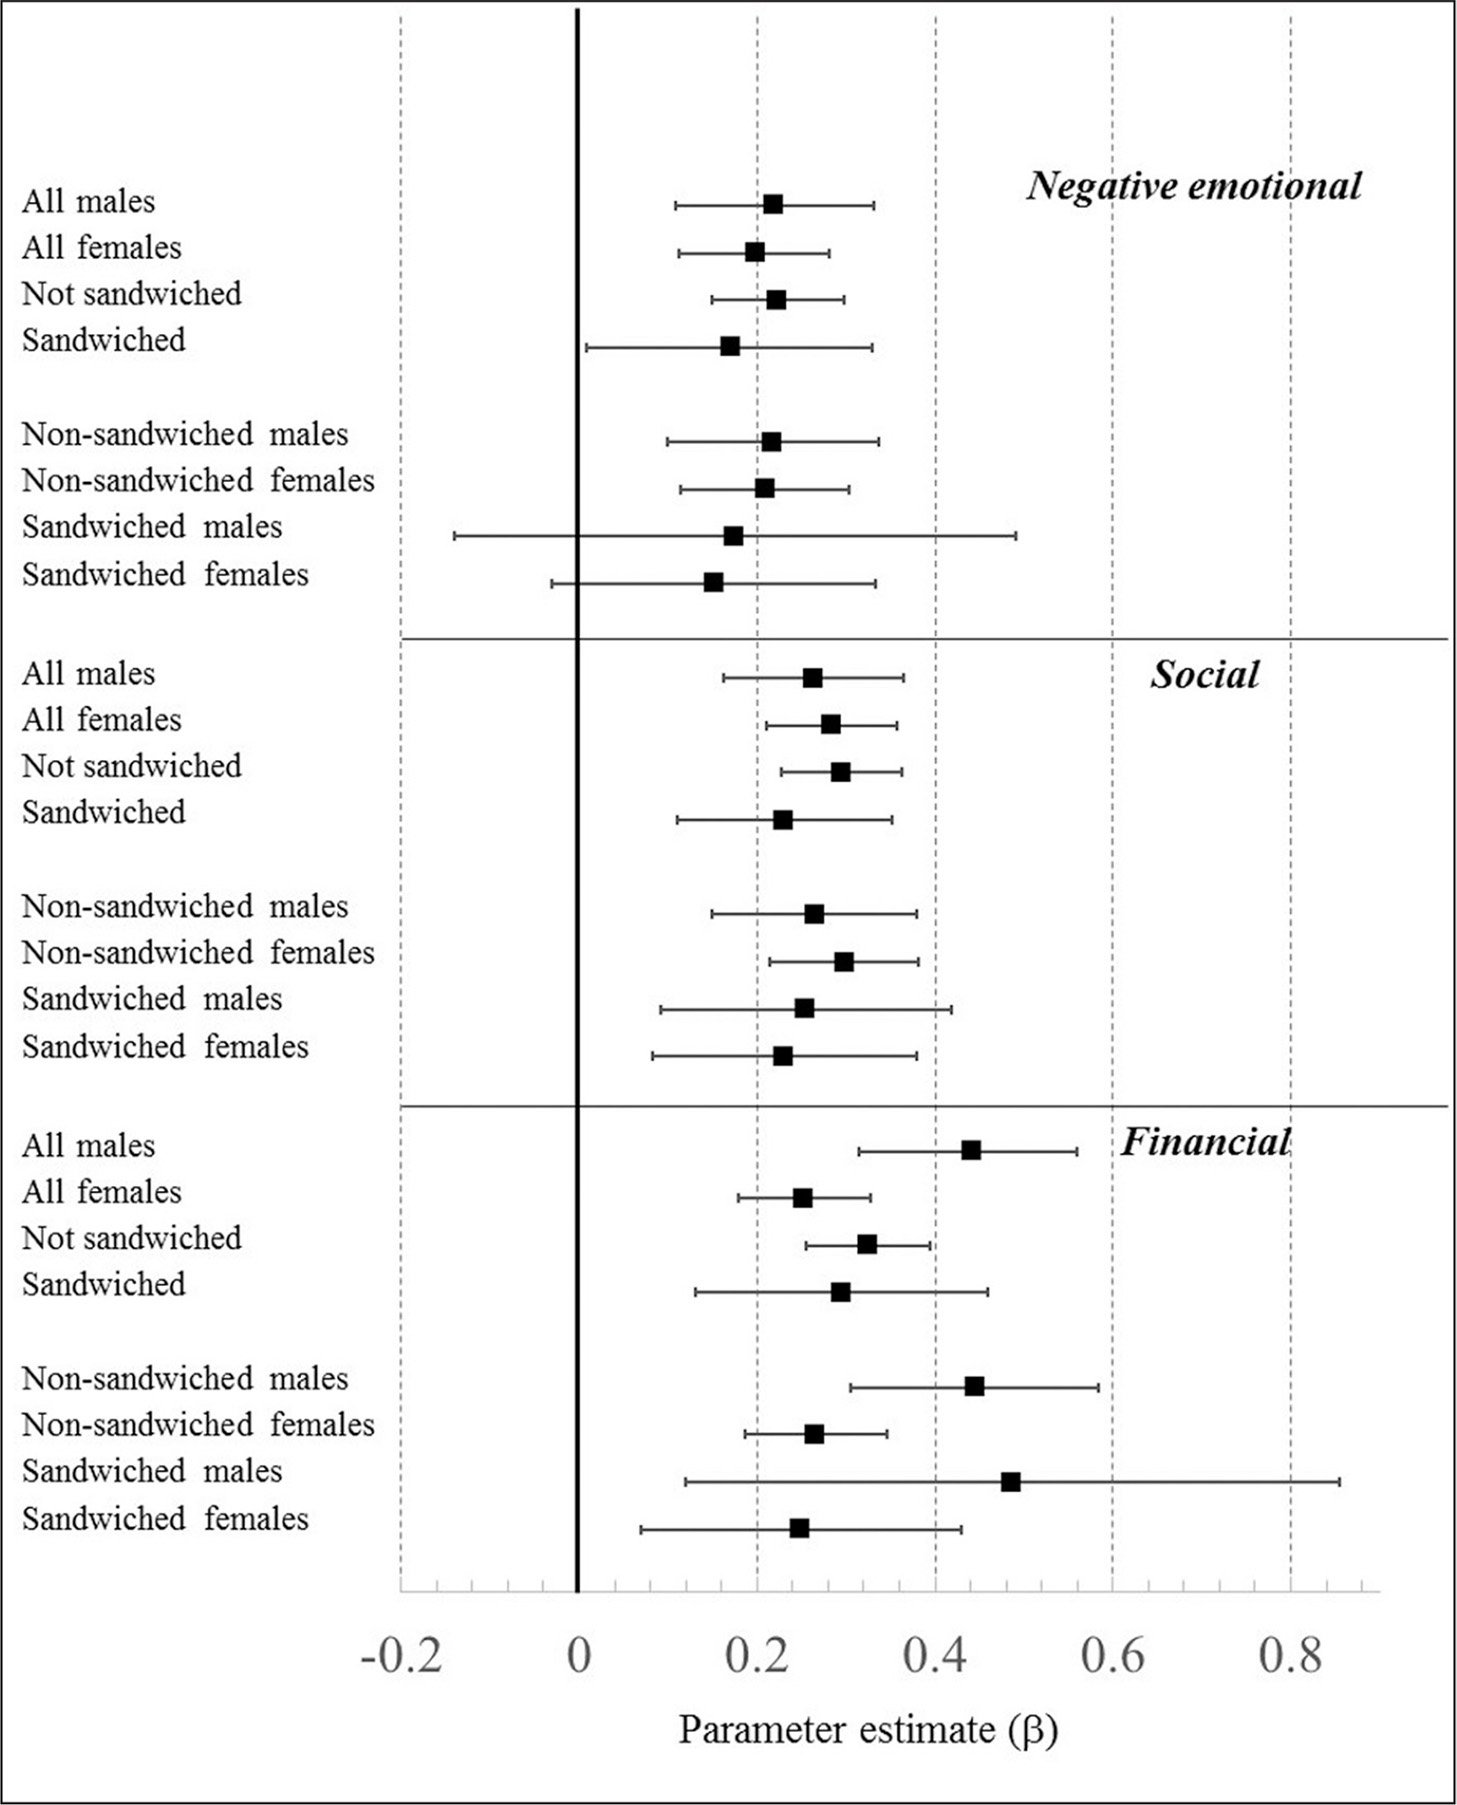 Model-based parameter estimates for the association between standardized measures of caregiving intensity and caregiver burden by gender and sandwiched status.